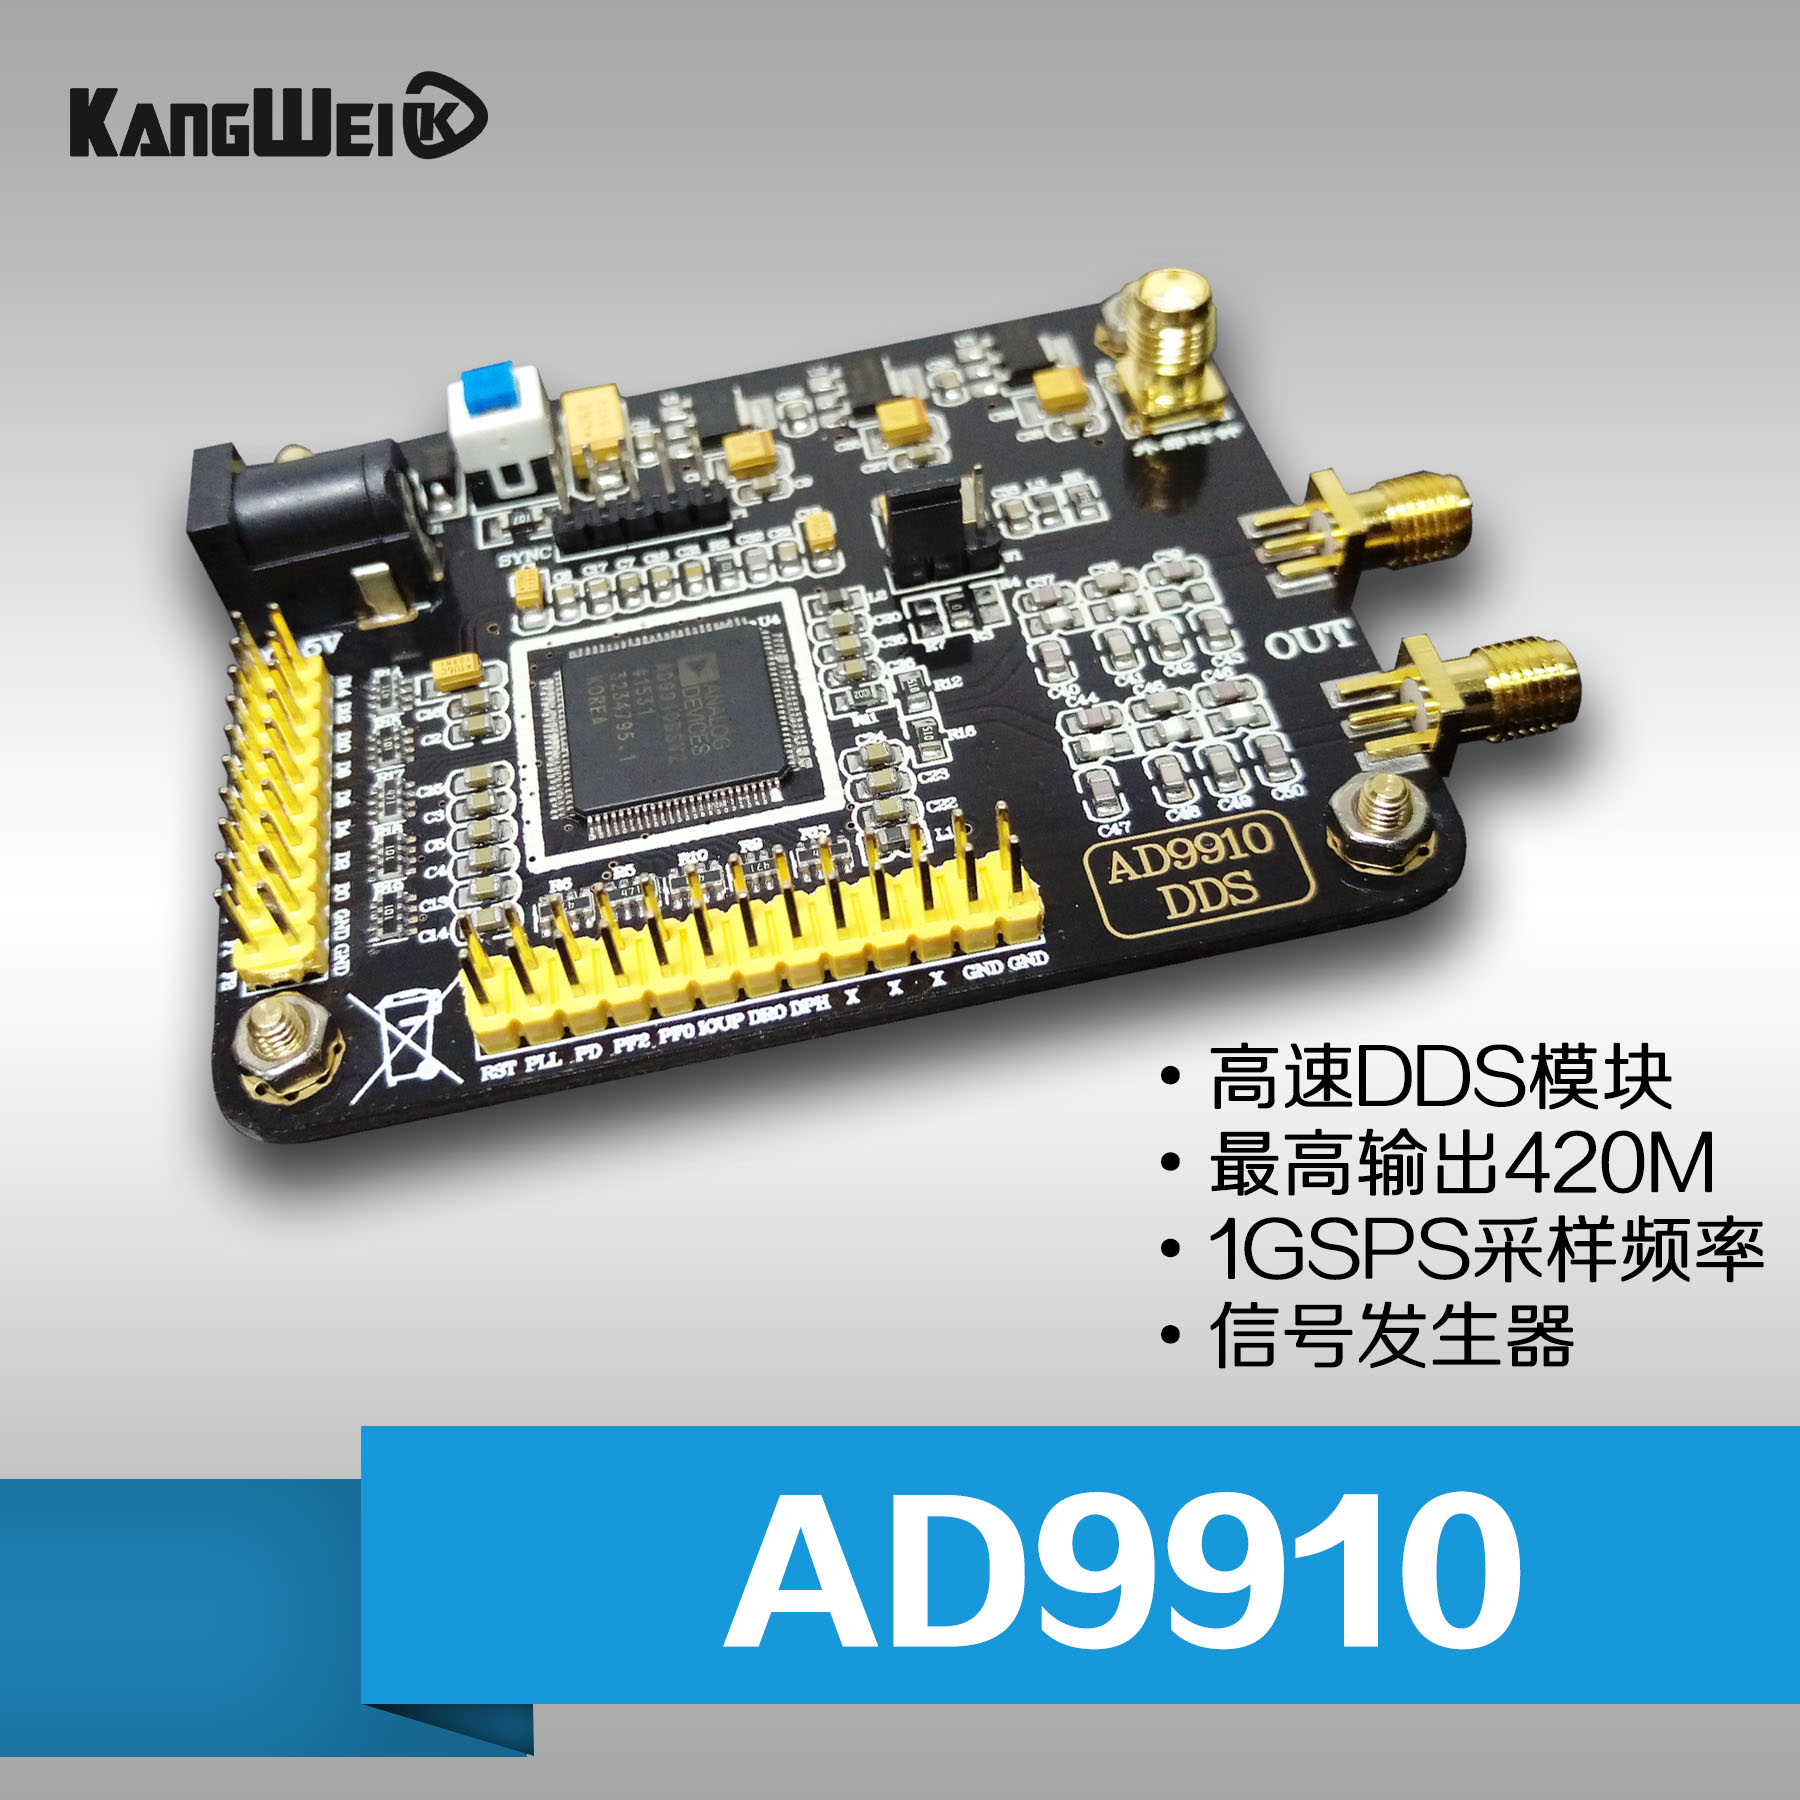 AD9910 high speed DDS module output up to 420M 1G sampling frequency signal generator development board sk150gd066t 150a600v 6 unit frequency conversion high speed module